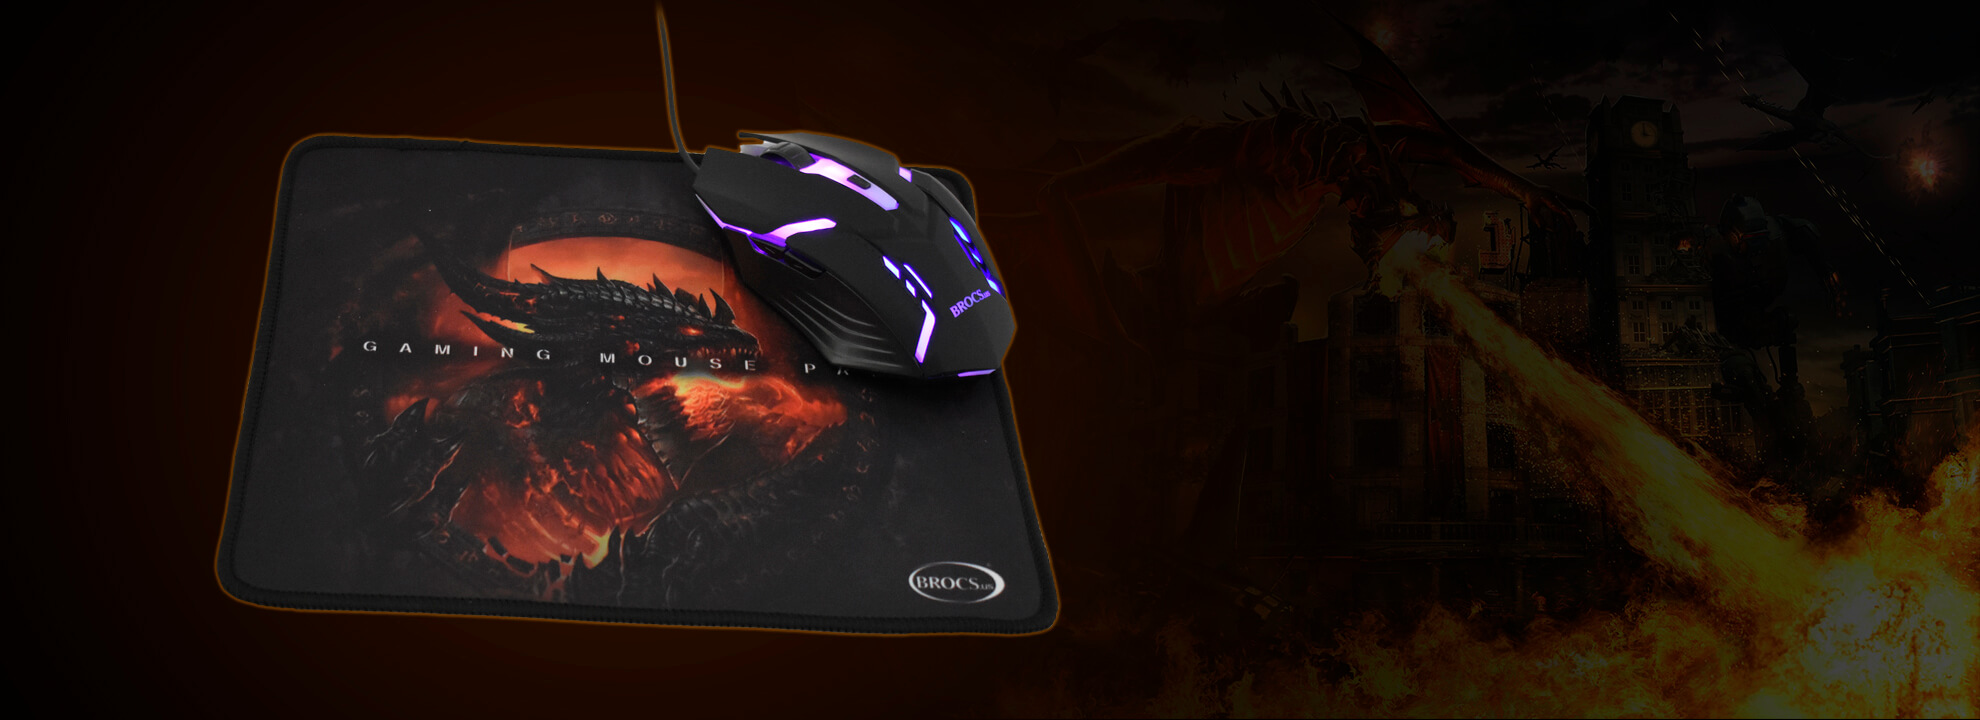 MOUSE_Y_MOUSE_PAD_GAMER_BROCS